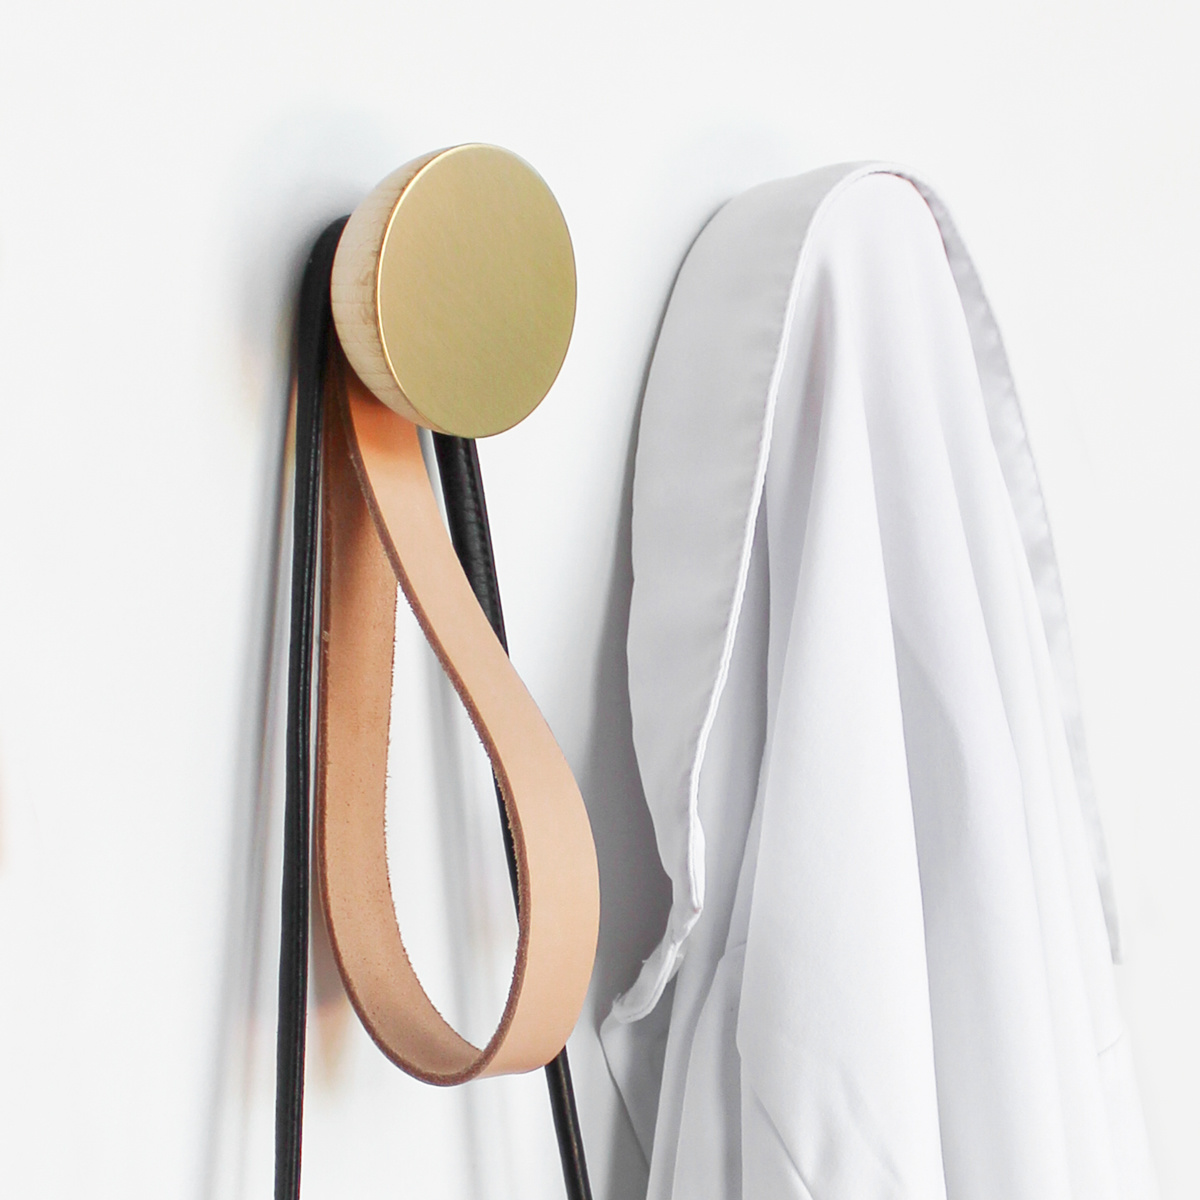 Round beech wood and brass wall hook with leather loop set / 2